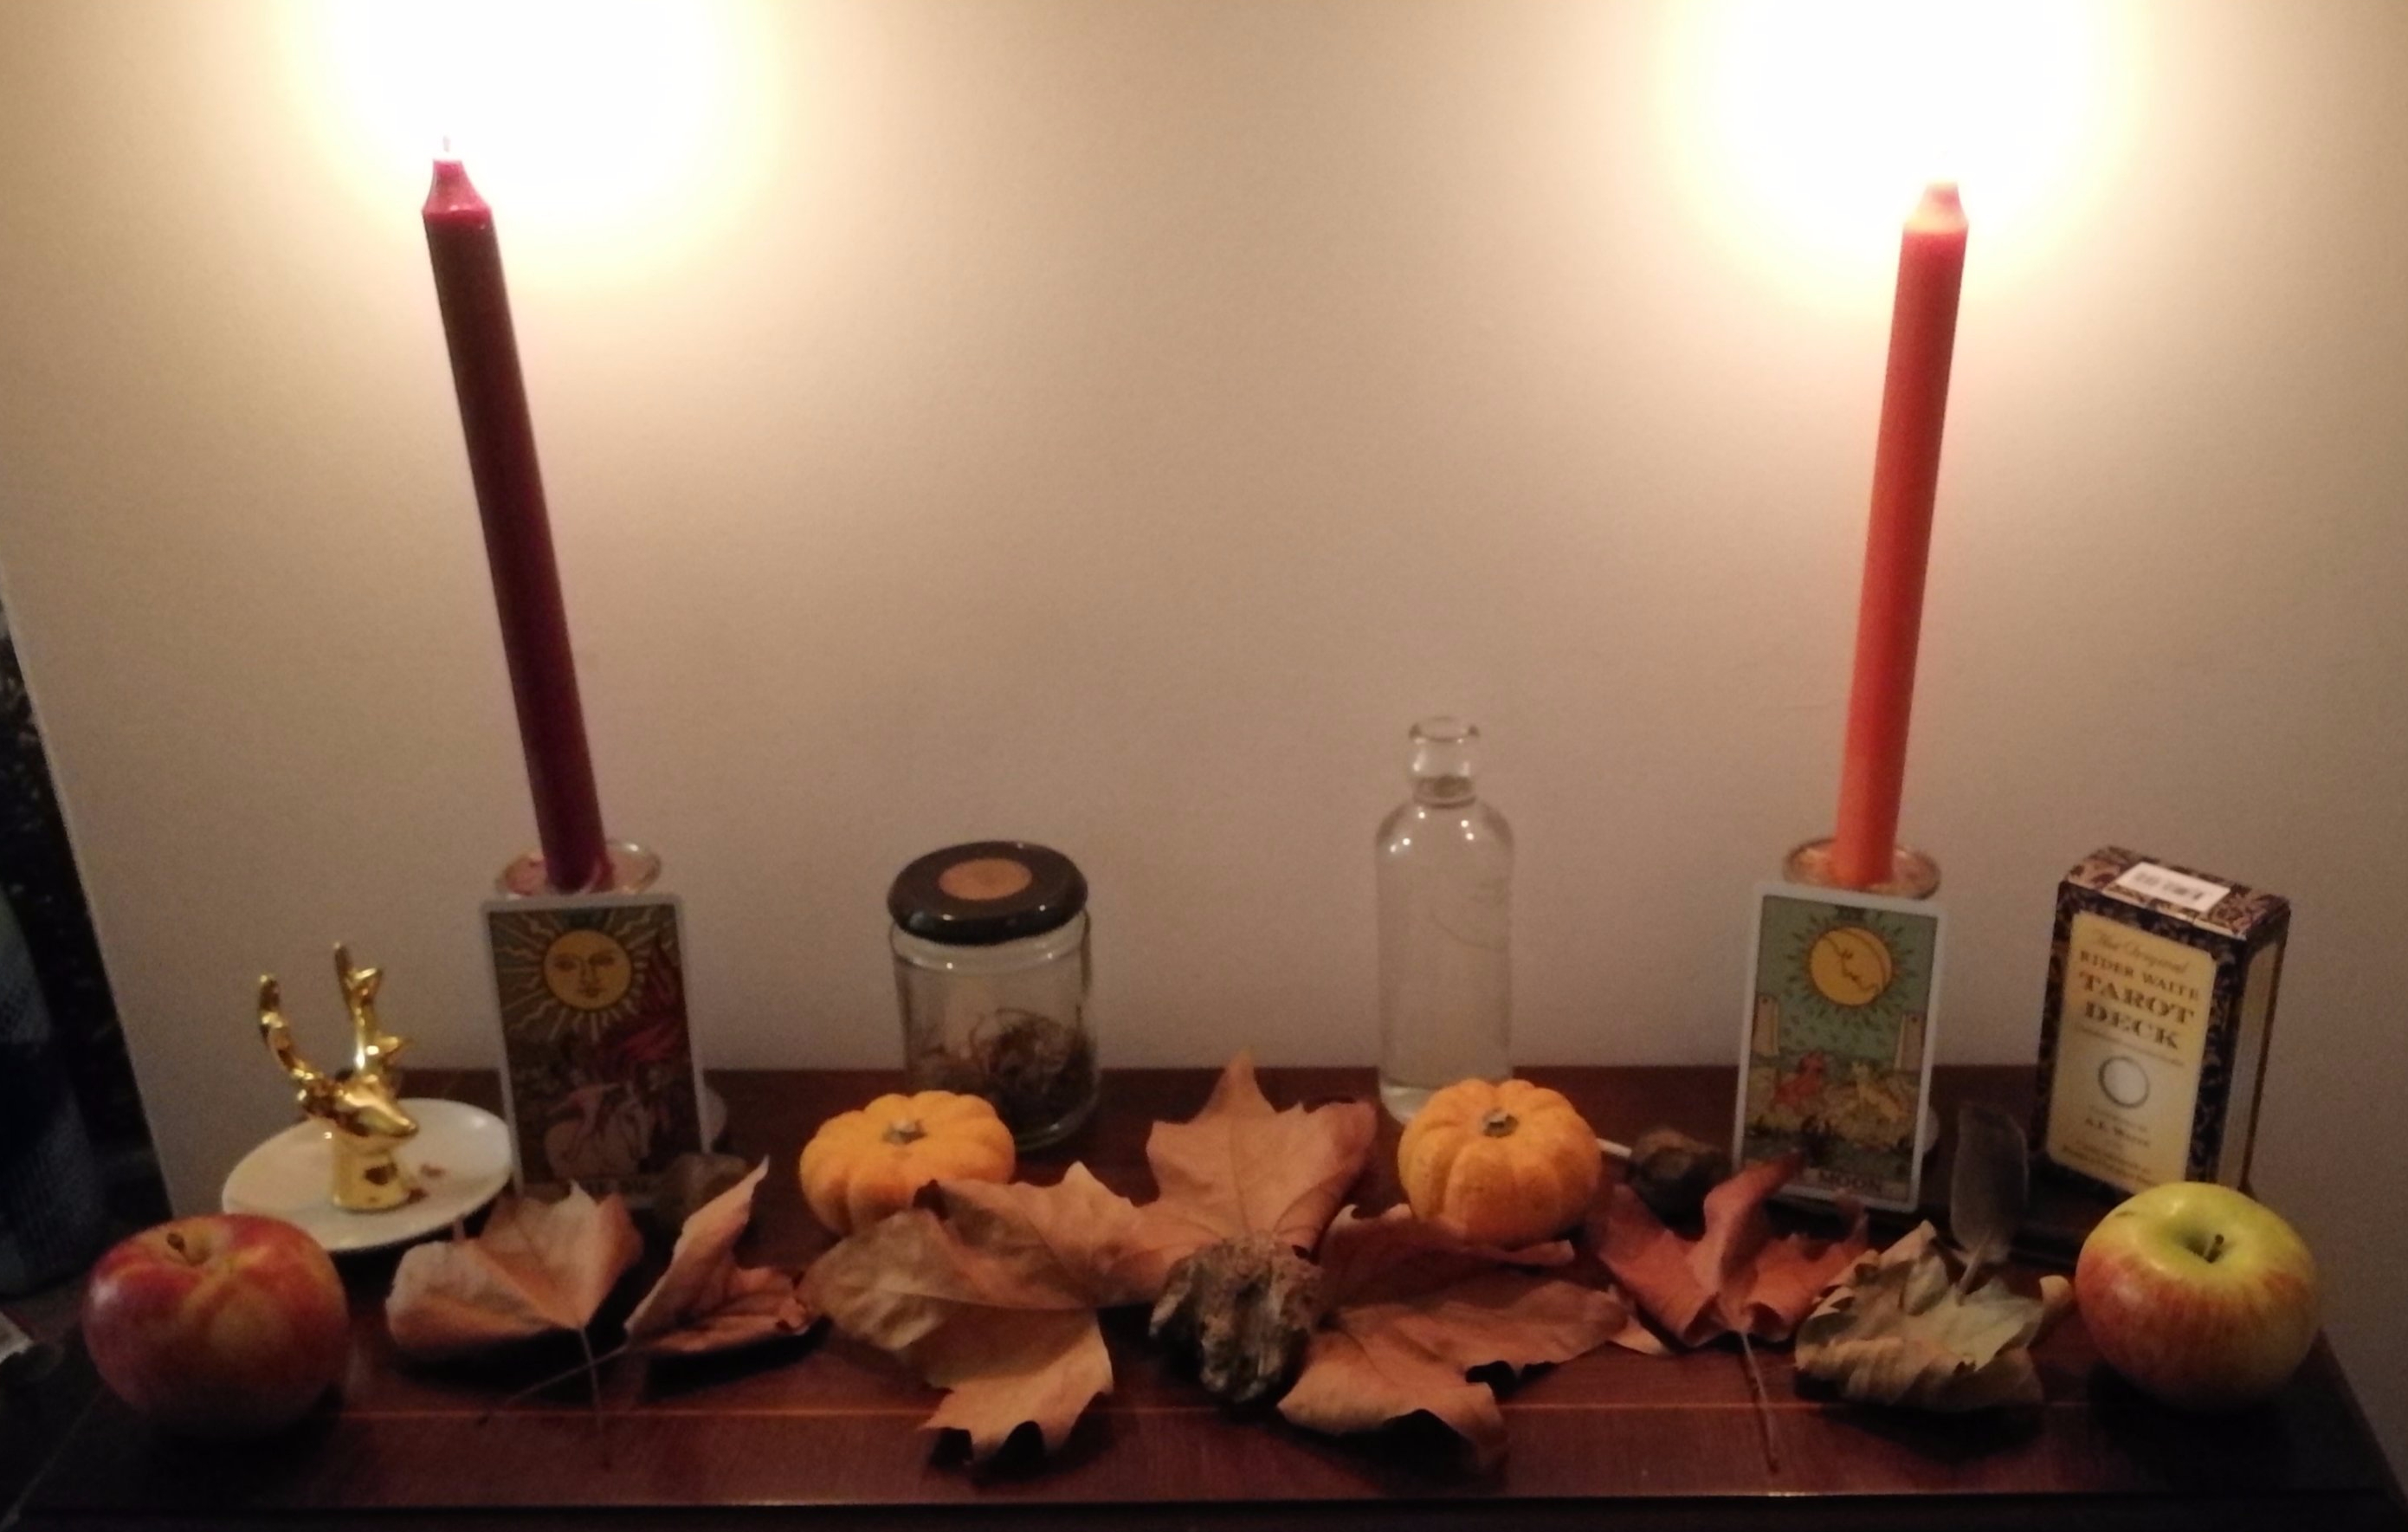 A pagan altar made up of apples, pumpkins, brown leaves and the sun and moon tarot cards